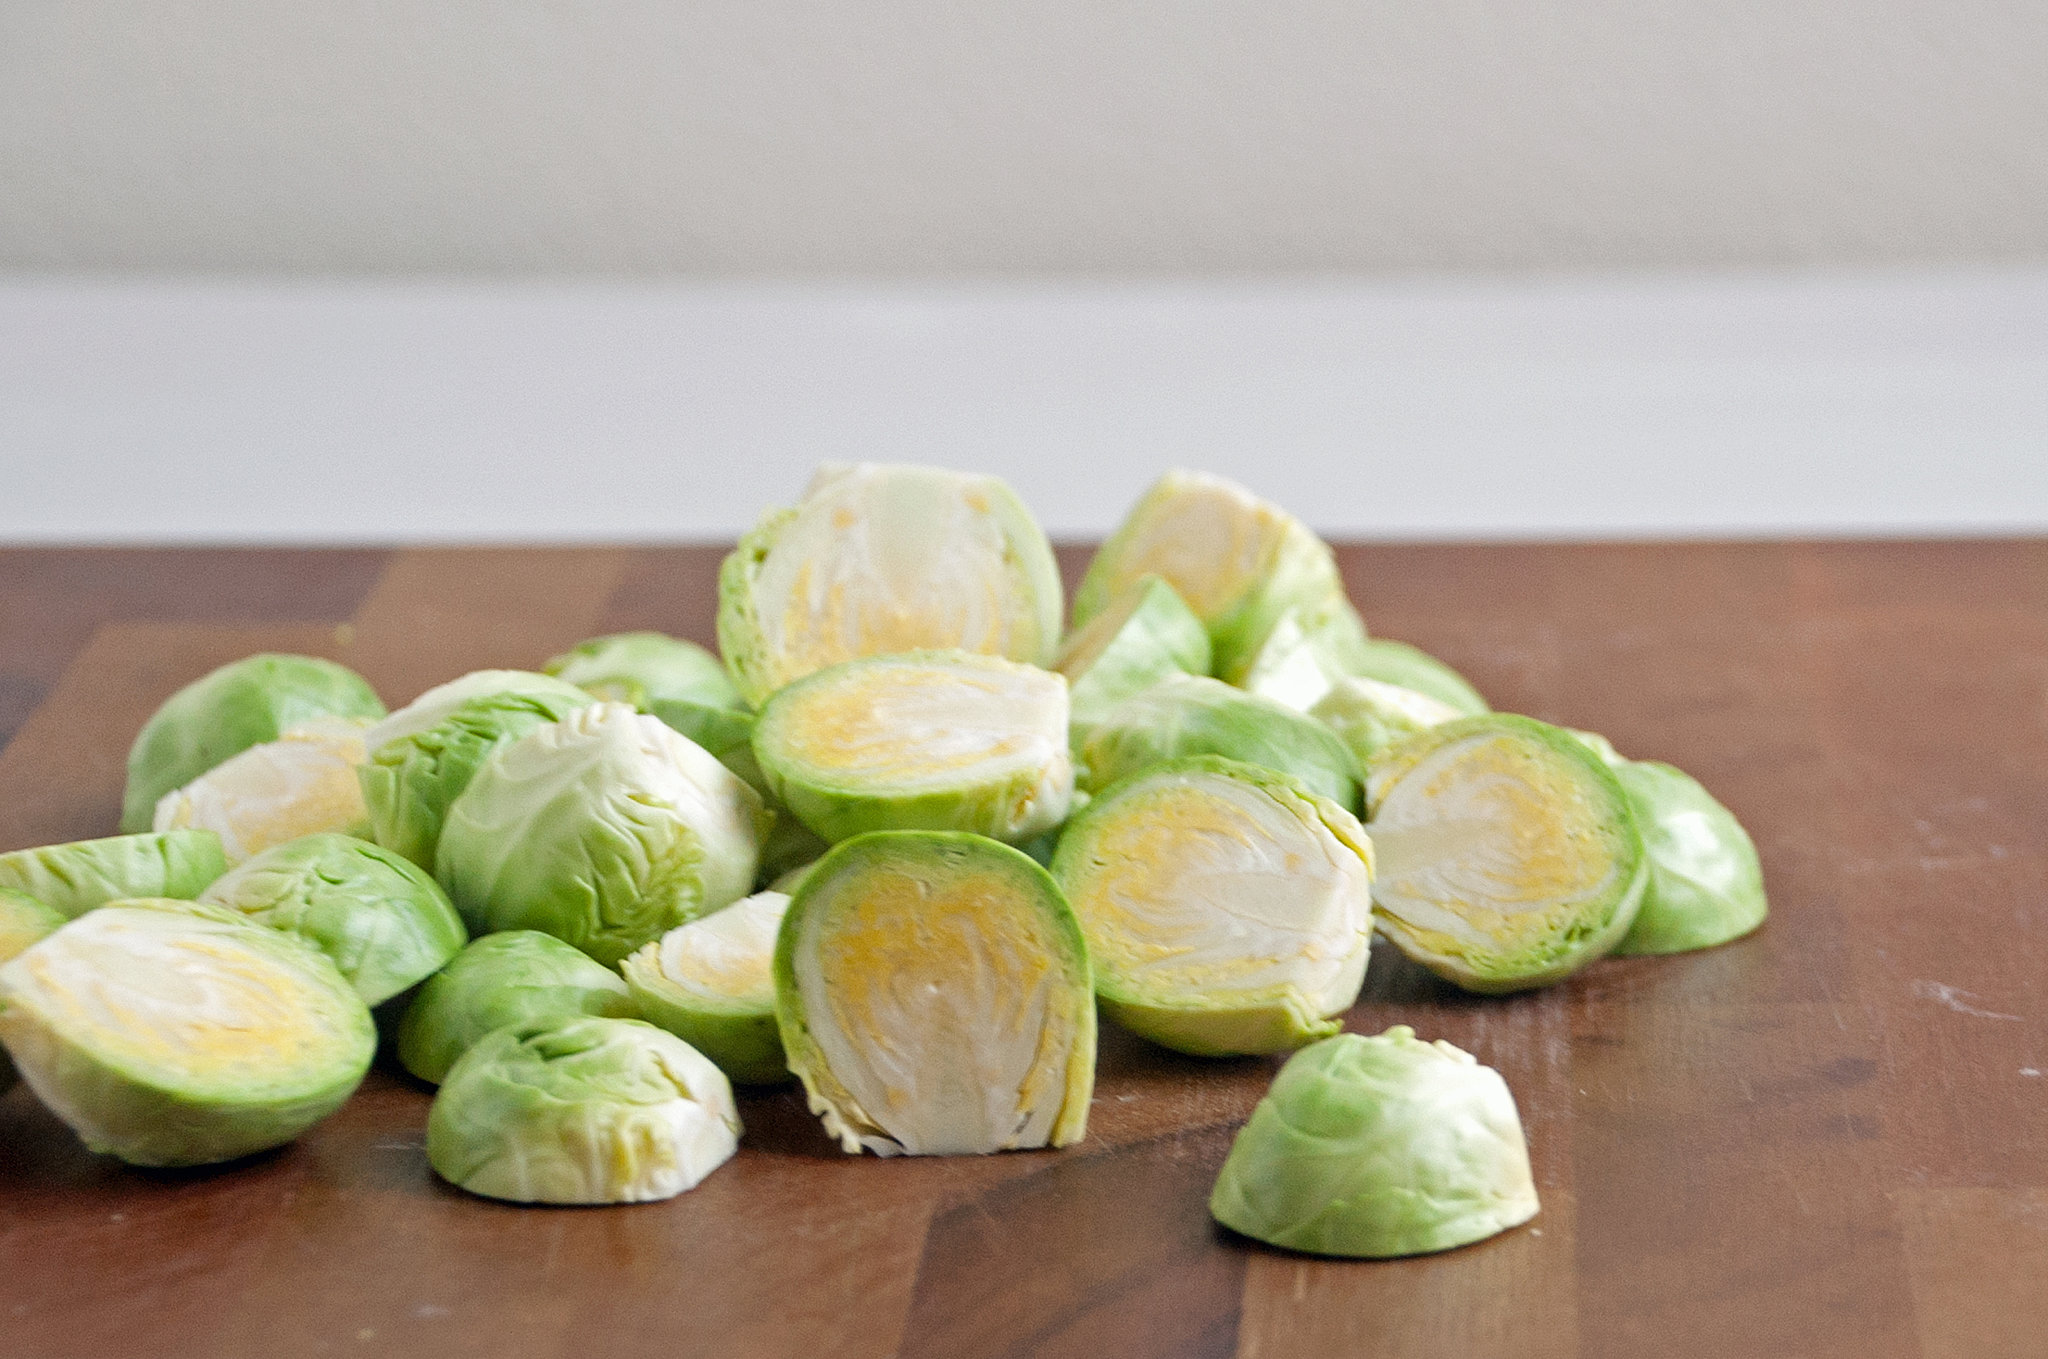 Halve the Brussels Sprouts